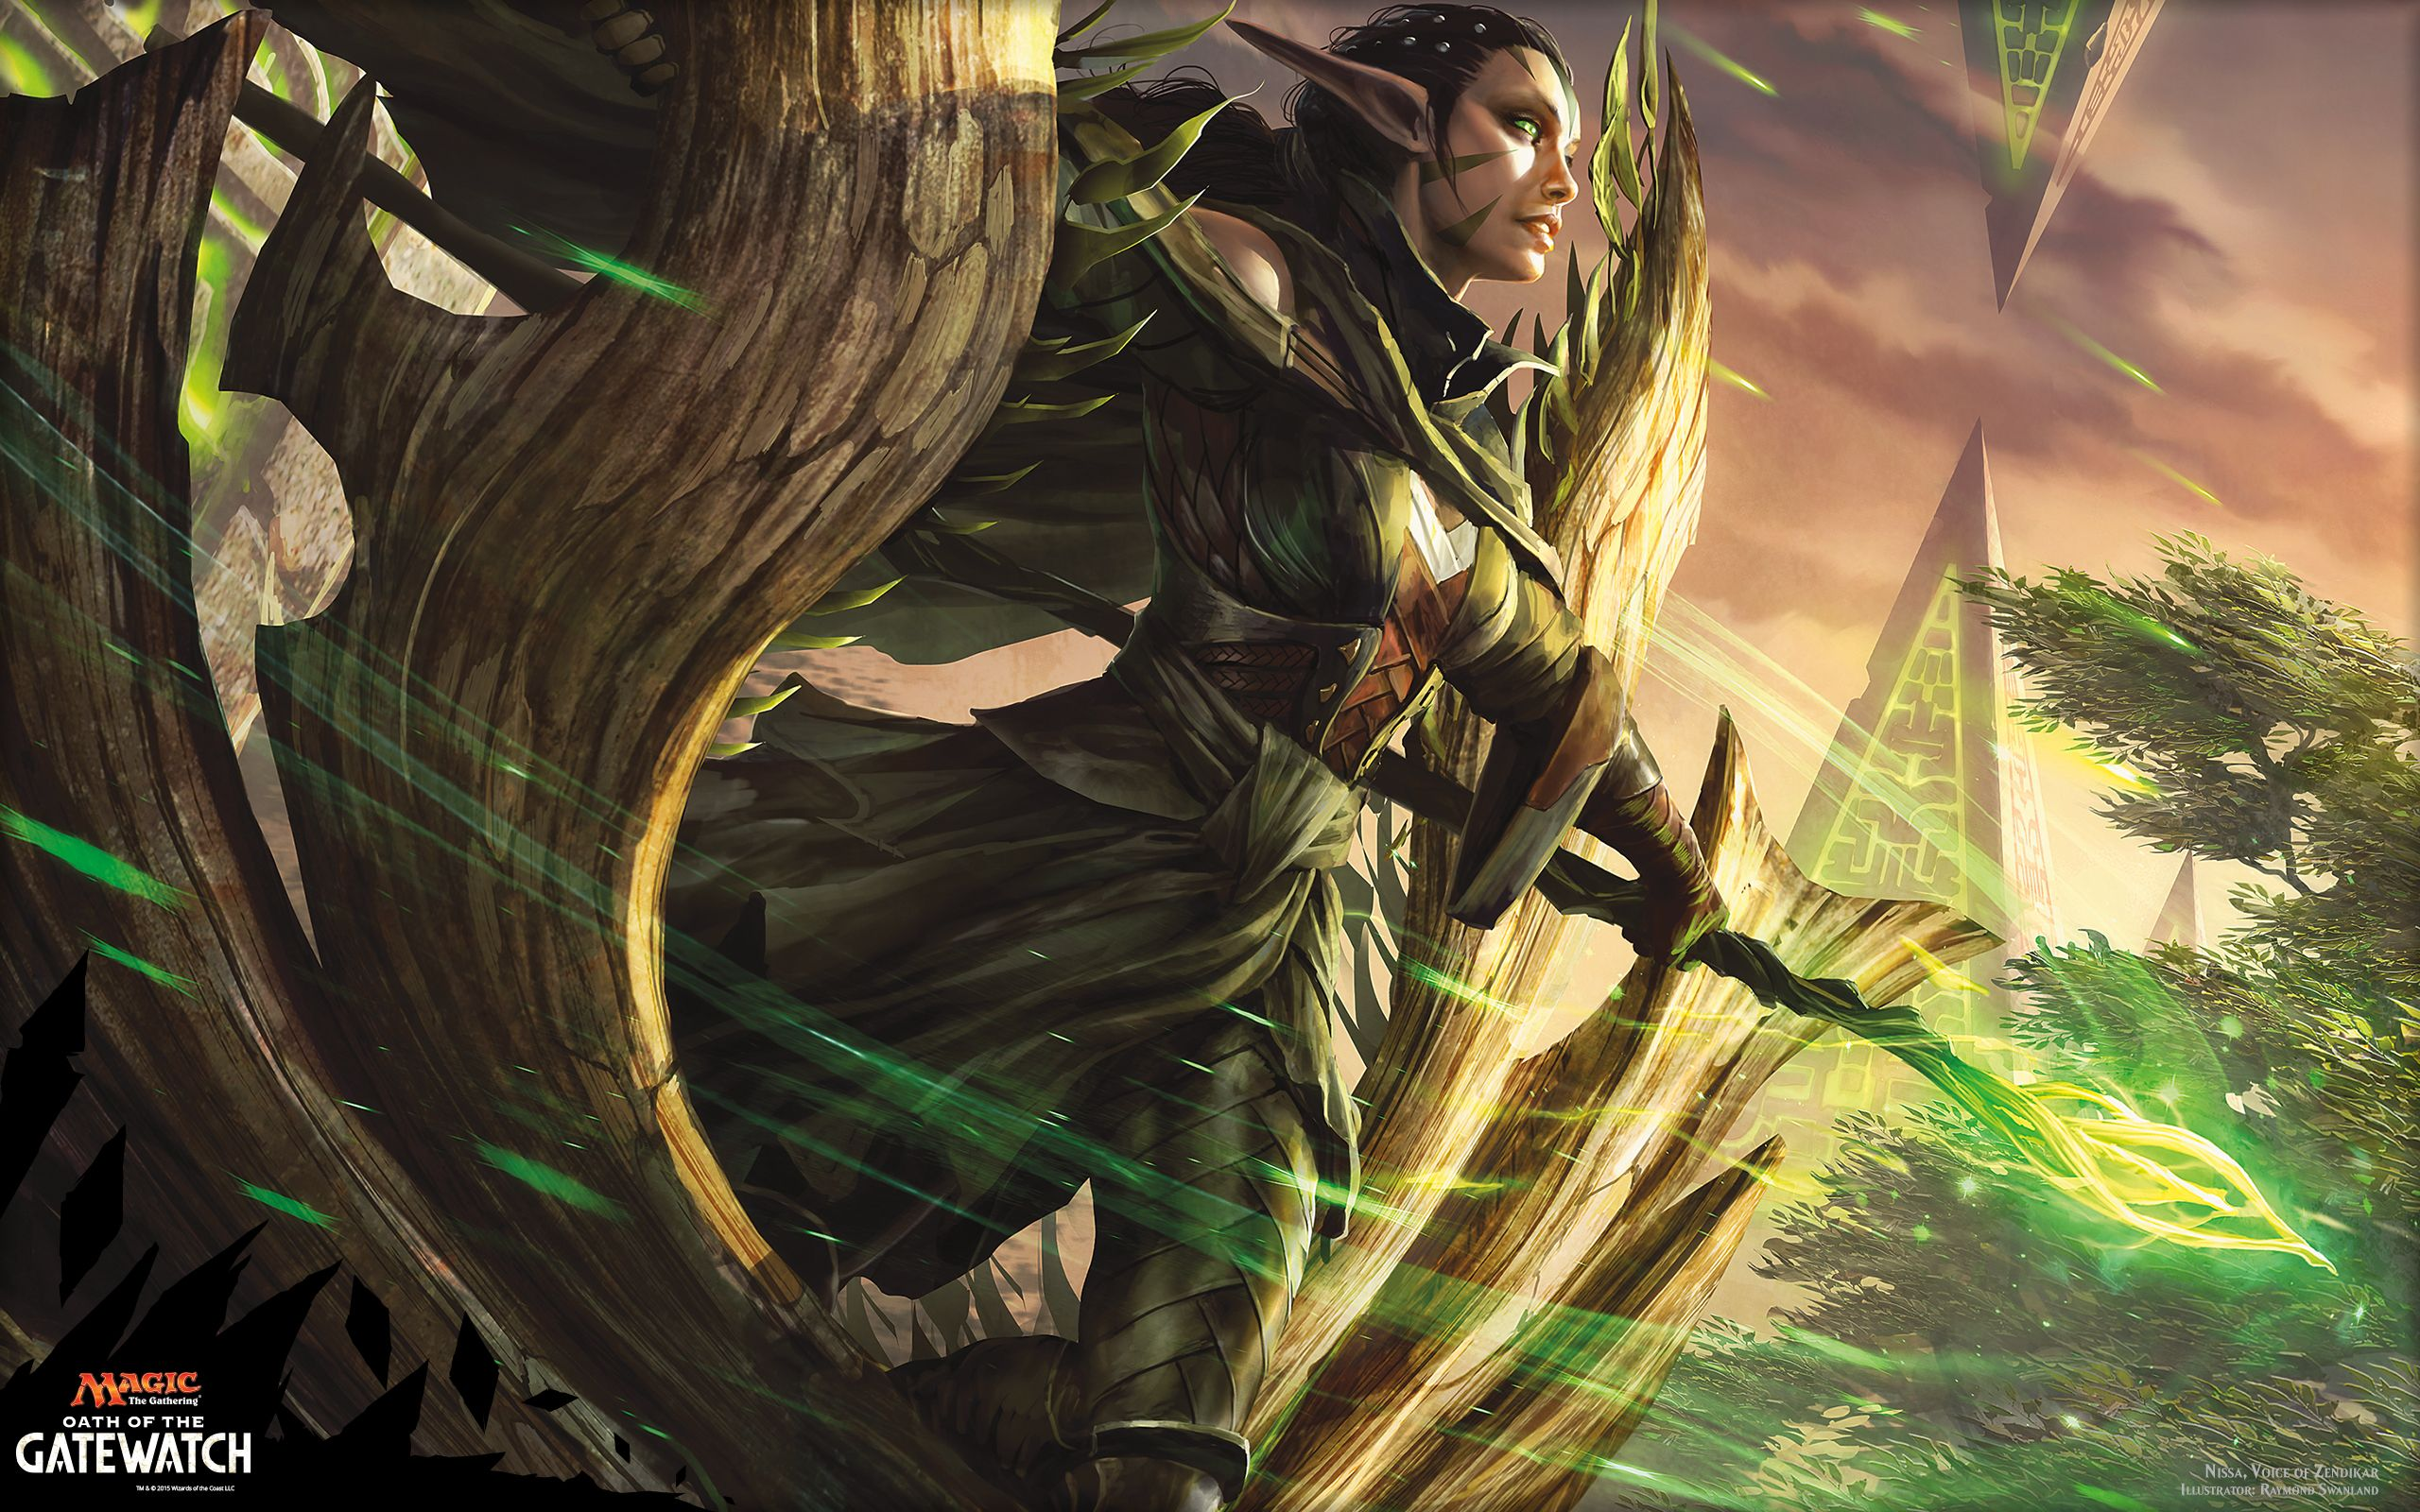 Nissa Voice Of Zendikar Ogw 2560x1600 Wallpaper Jpg 2560 1600 Hd Wallpaper Mtg Wallpaper